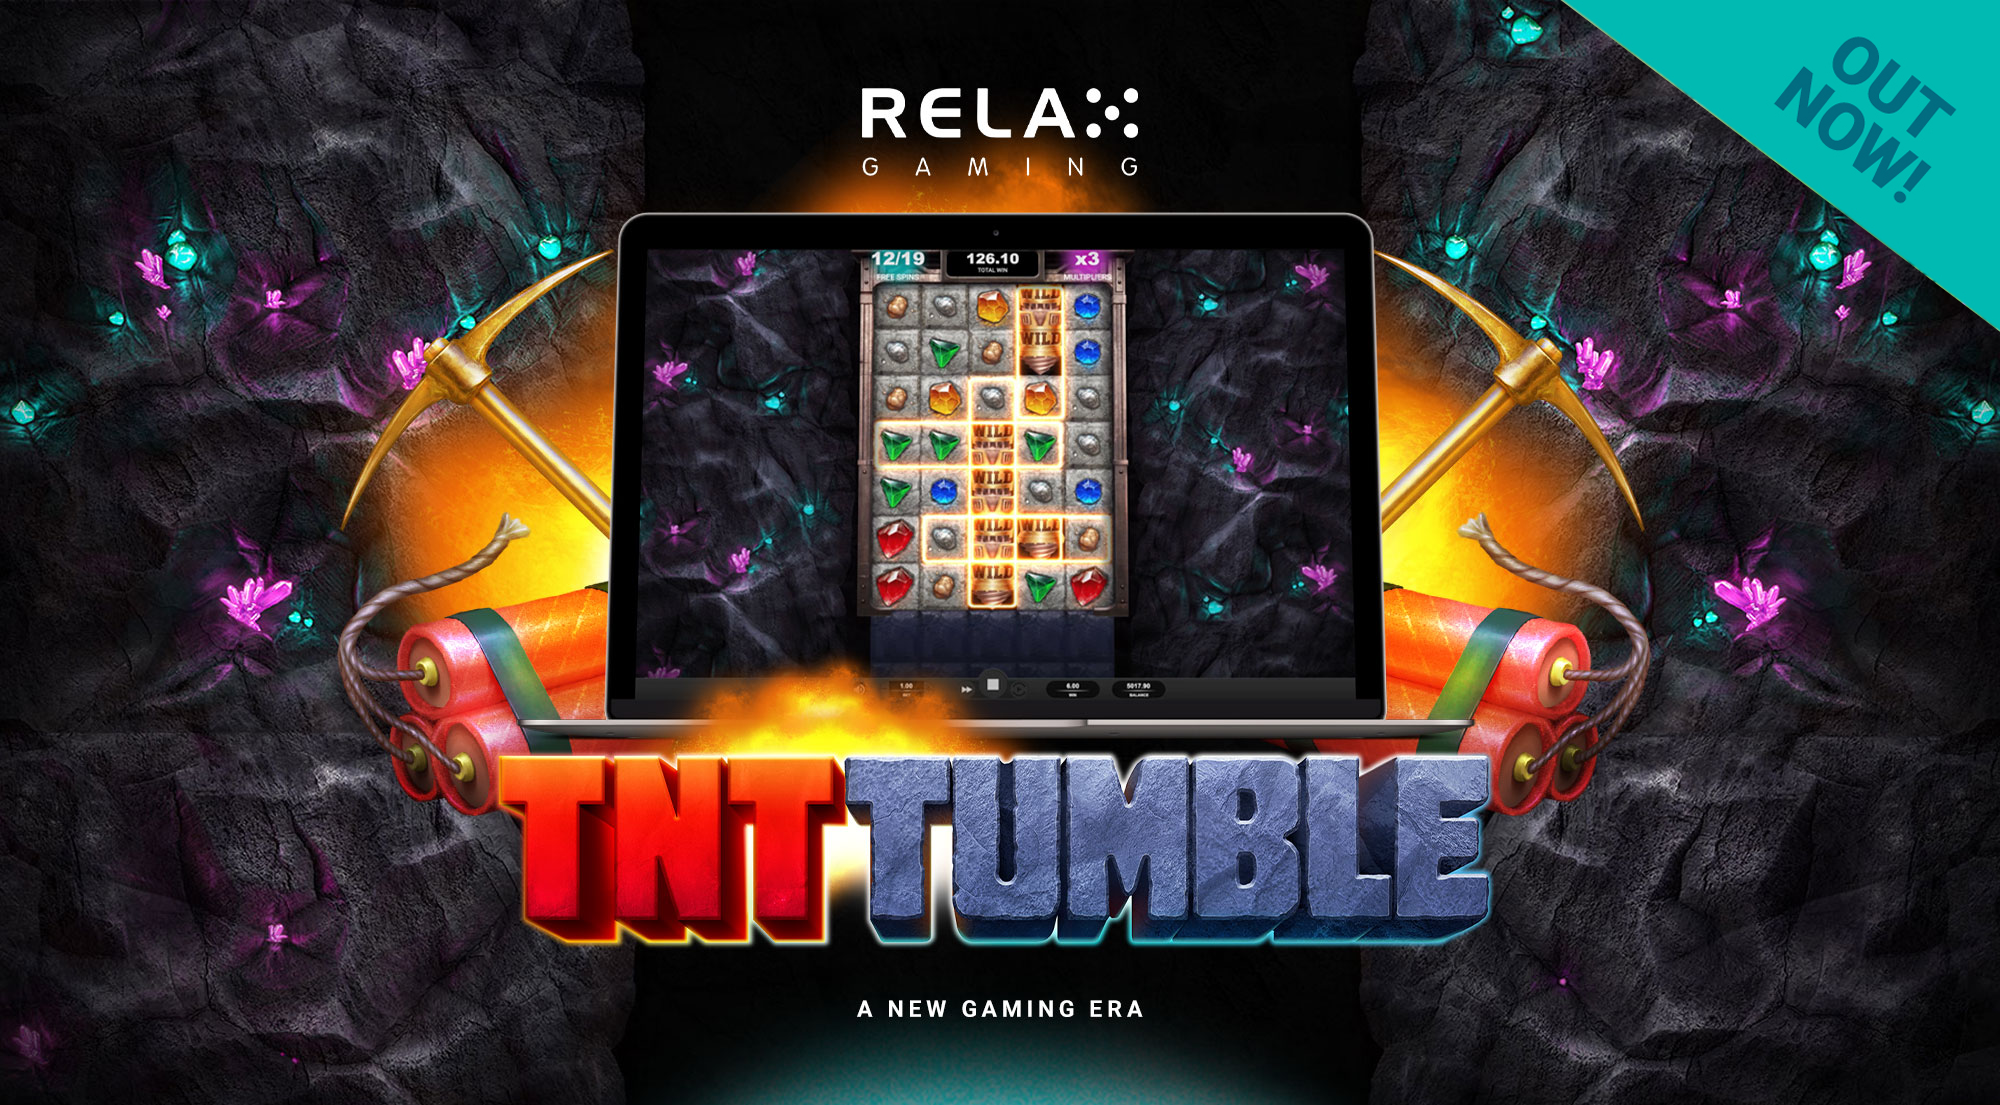 Relax Gaming releases third game in Tumble series with explosive TNT Tumble